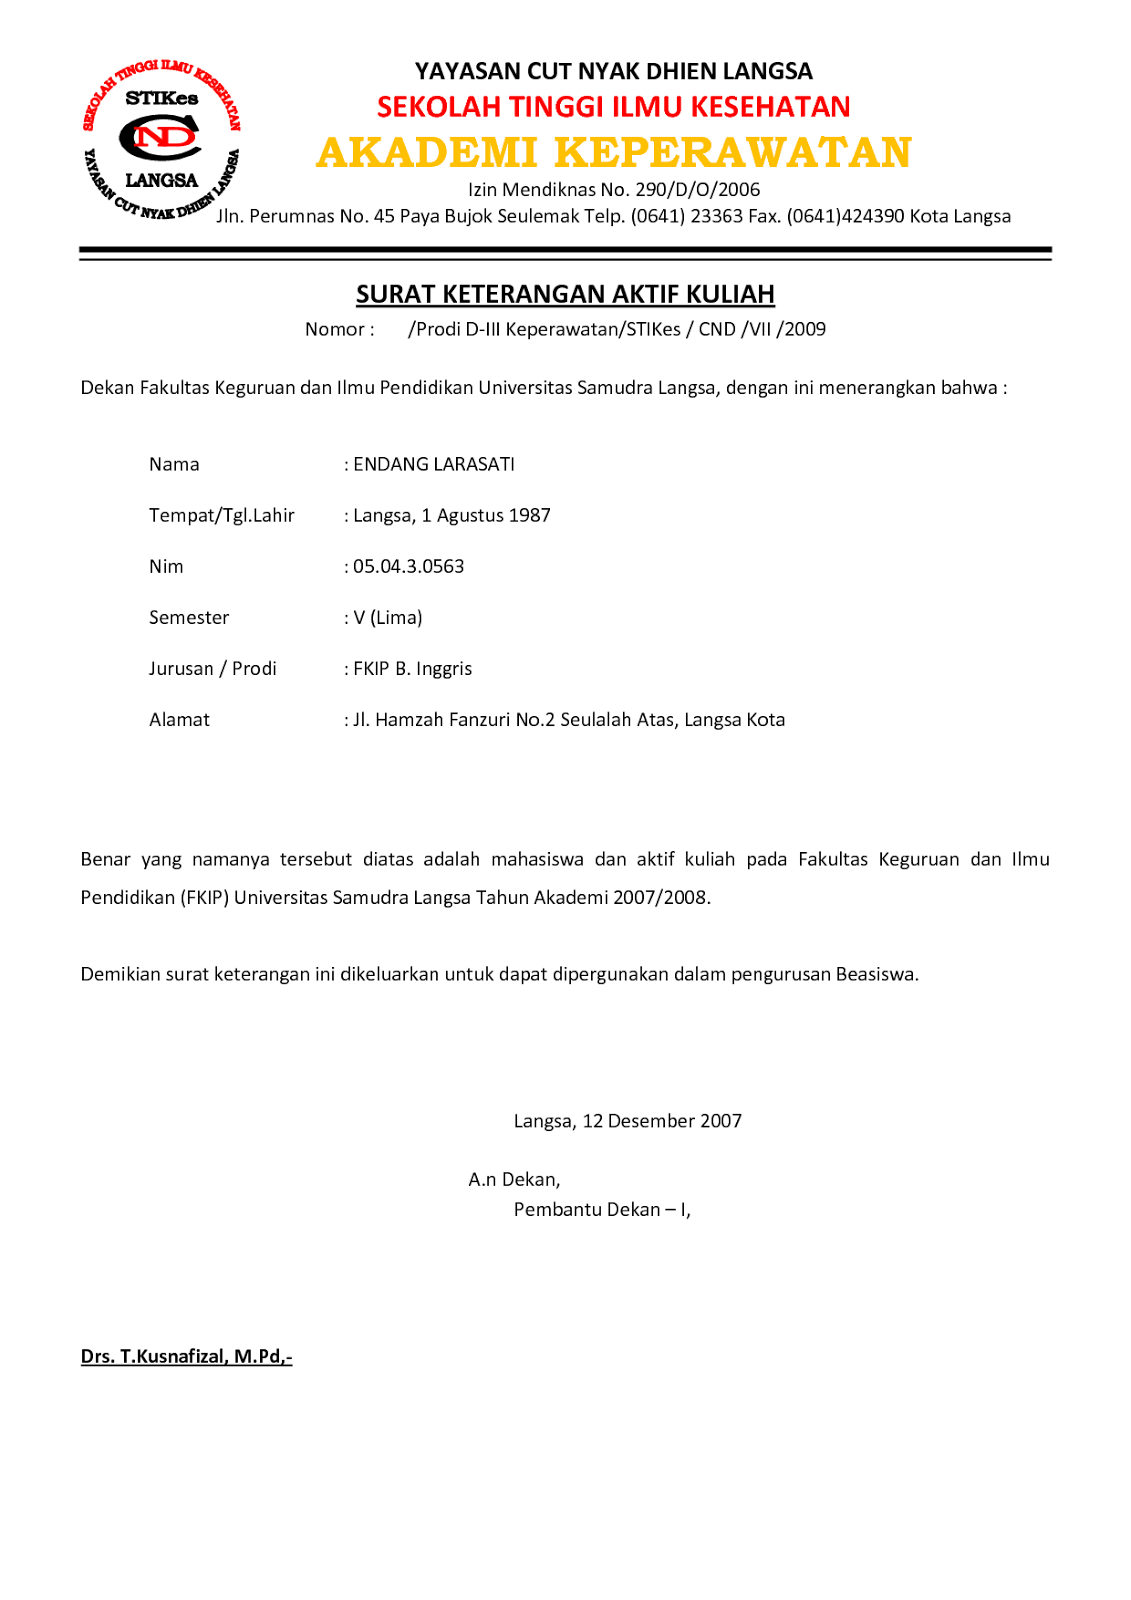 Contoh Surat Aktif Kuliah Unmul Global Images Post Date